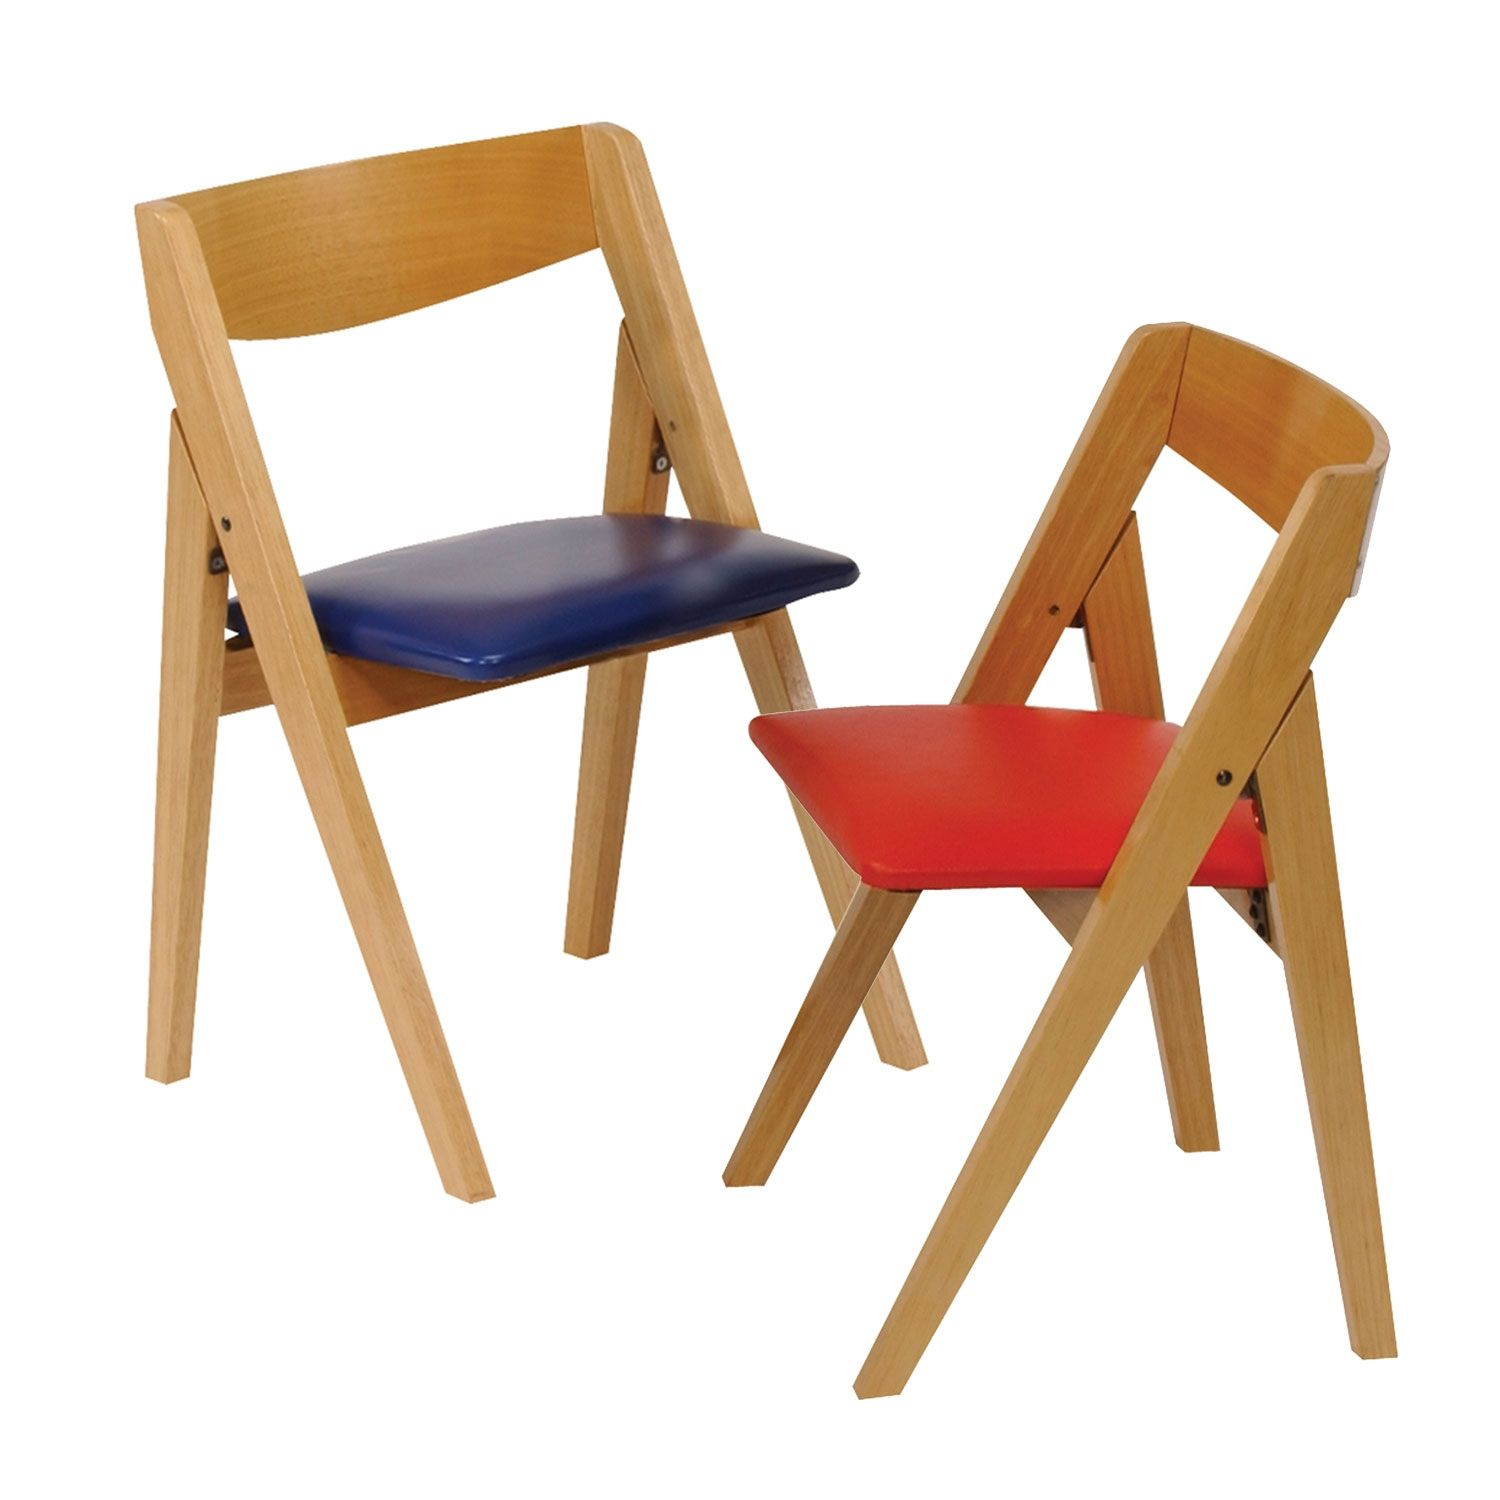 - ChildrenS Fold Up Chairs Wooden Folding Chairs, Wooden High